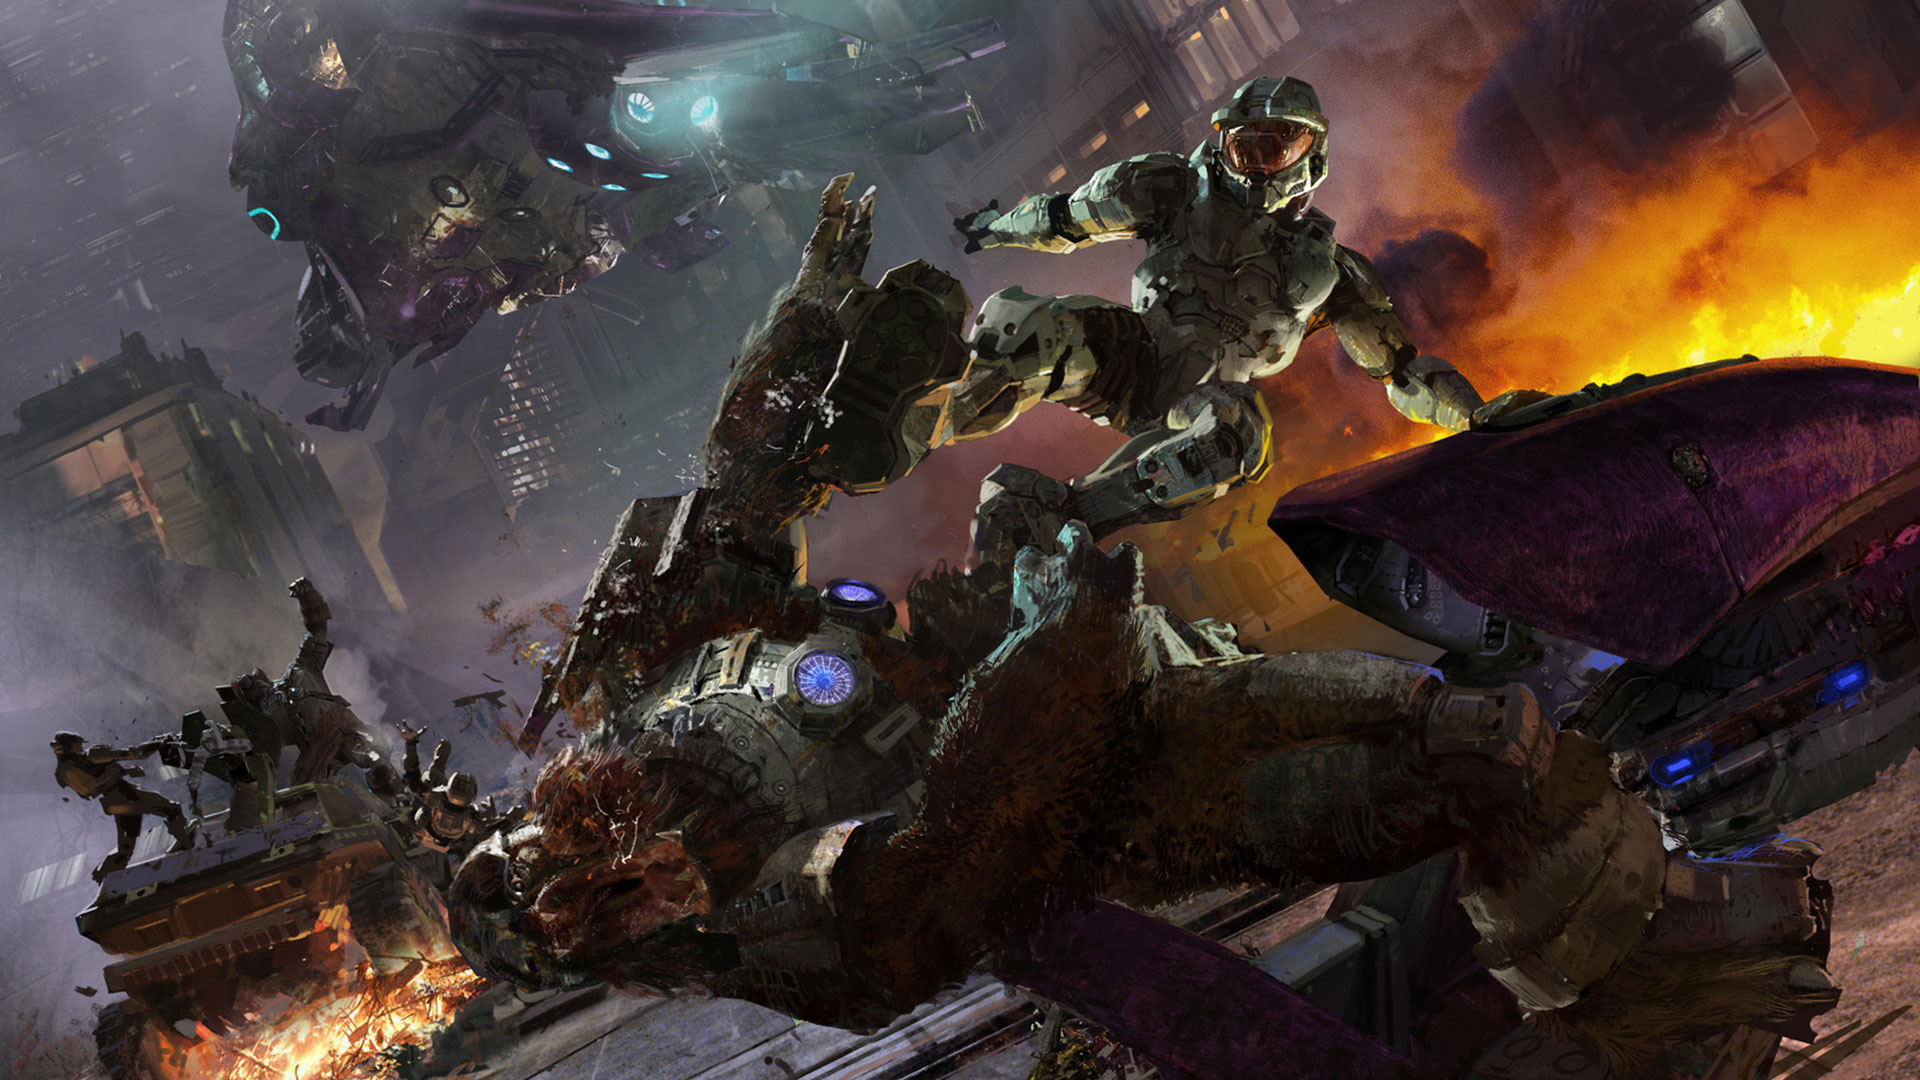 Halo 2 Fastest Selling Game